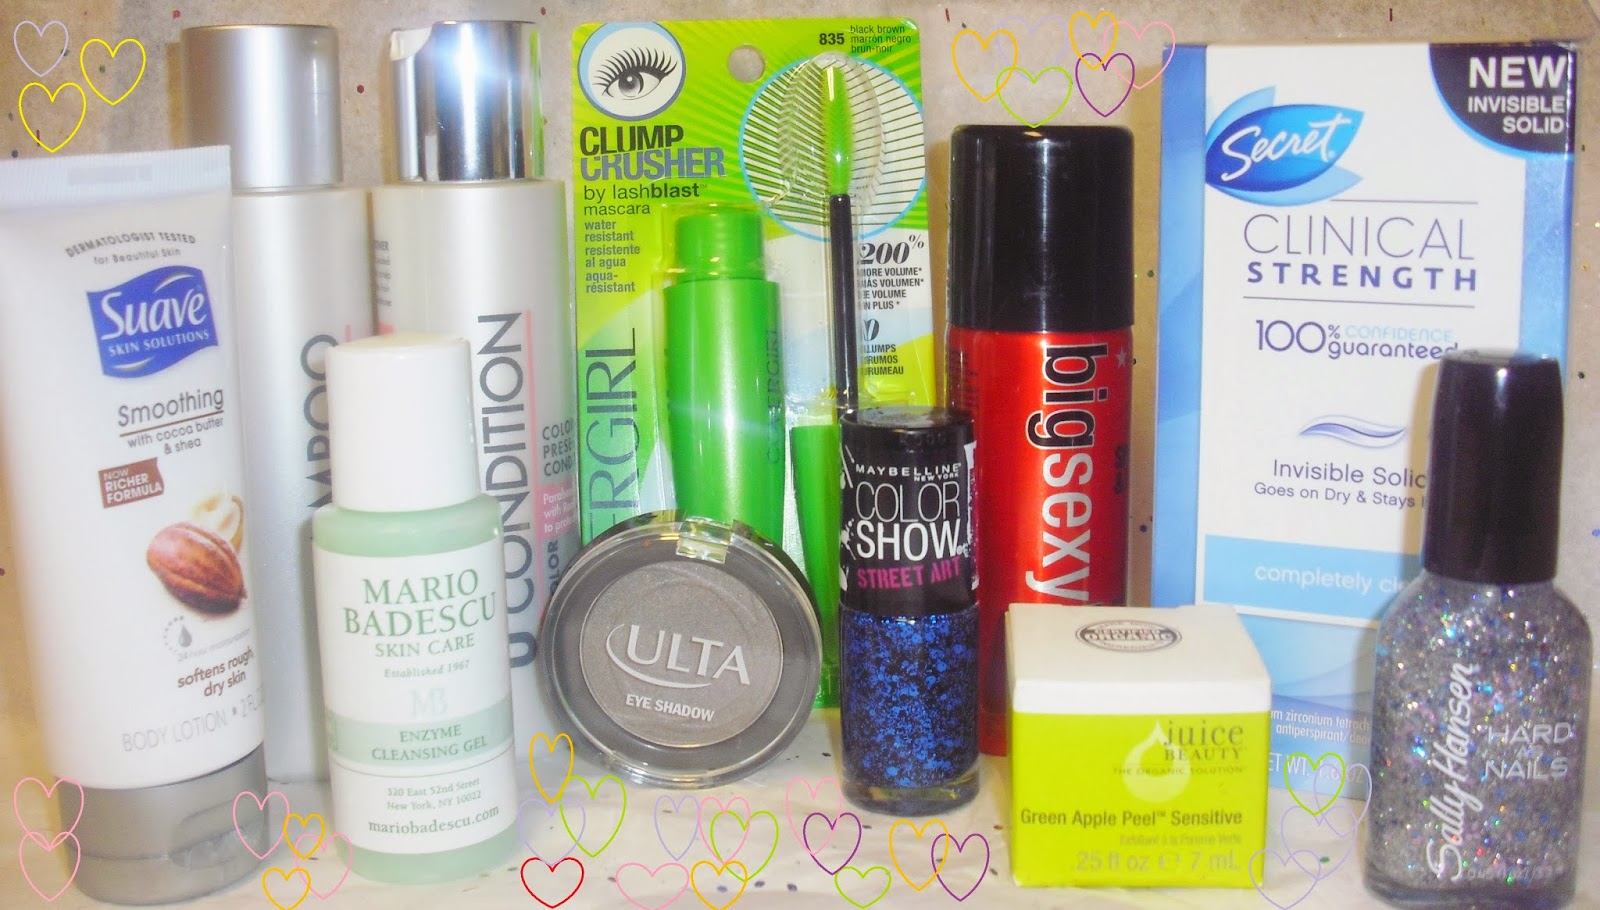 FREE BEAUTY PRODUCTS GIVEAWAY